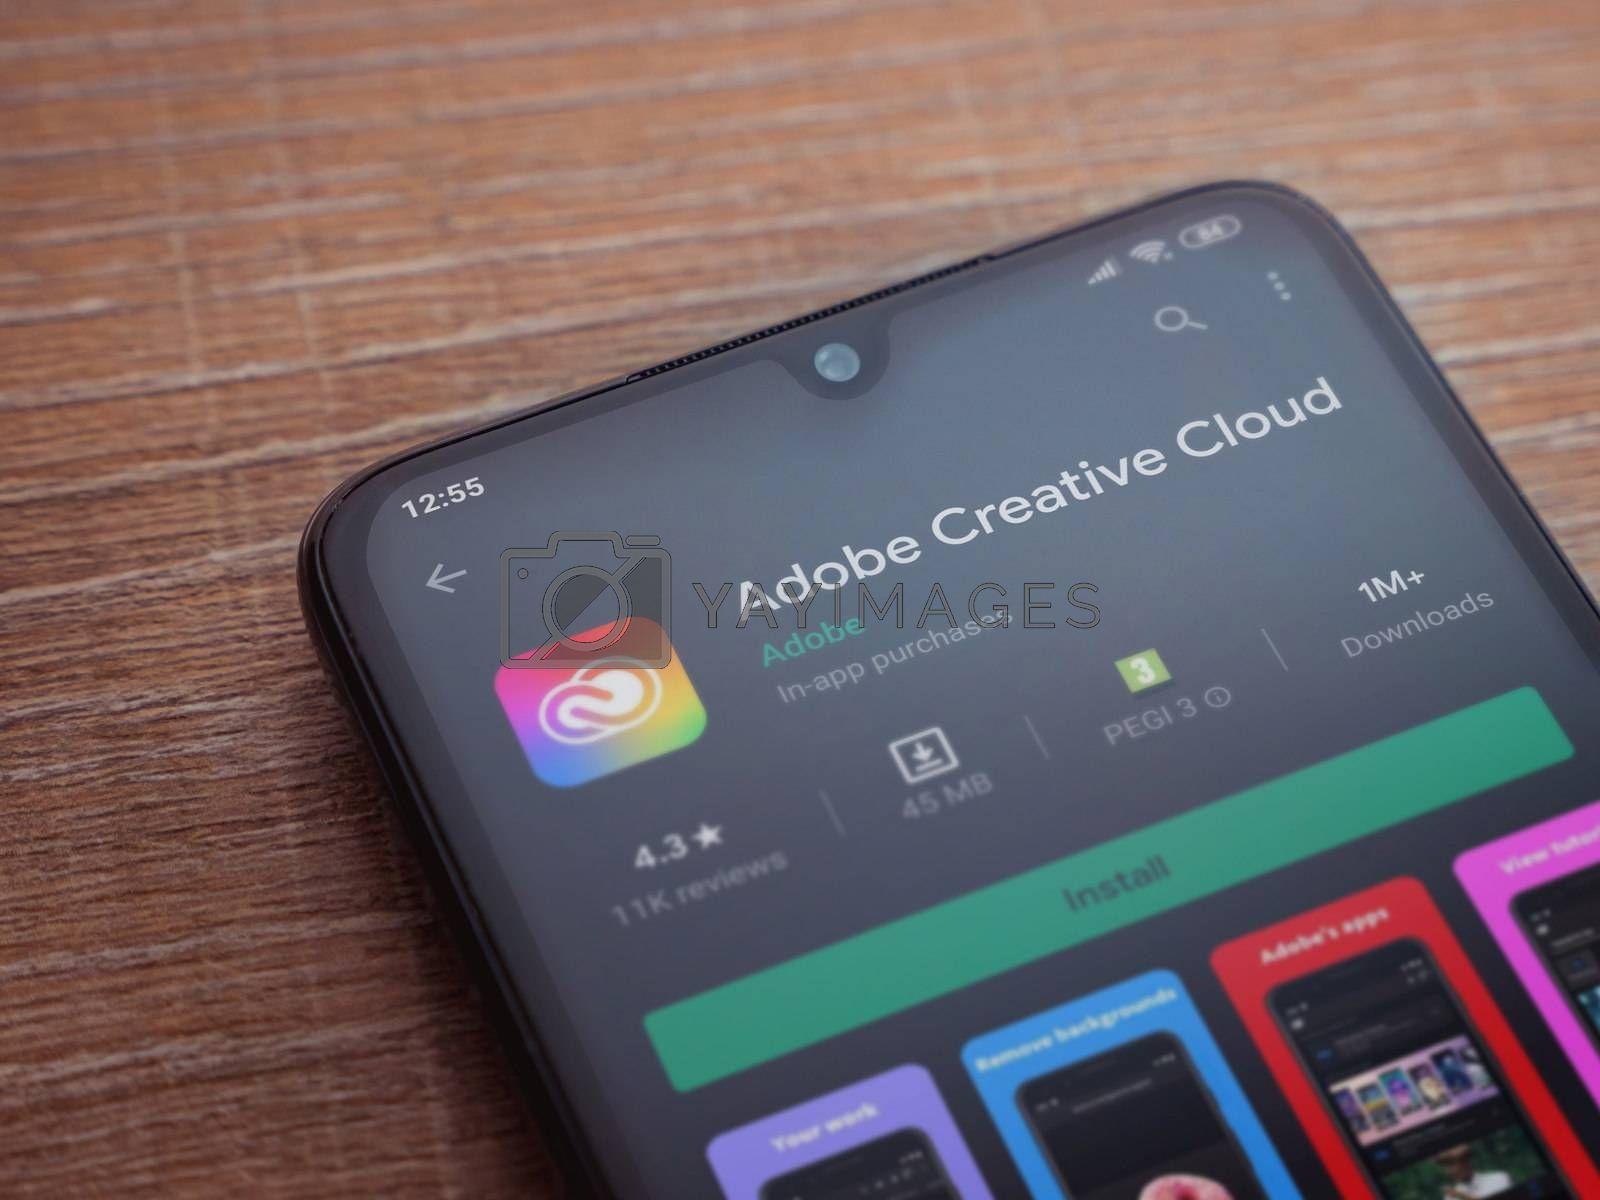 Adobe Creative Cloud app play store page on the display of a bla by Wave Movies